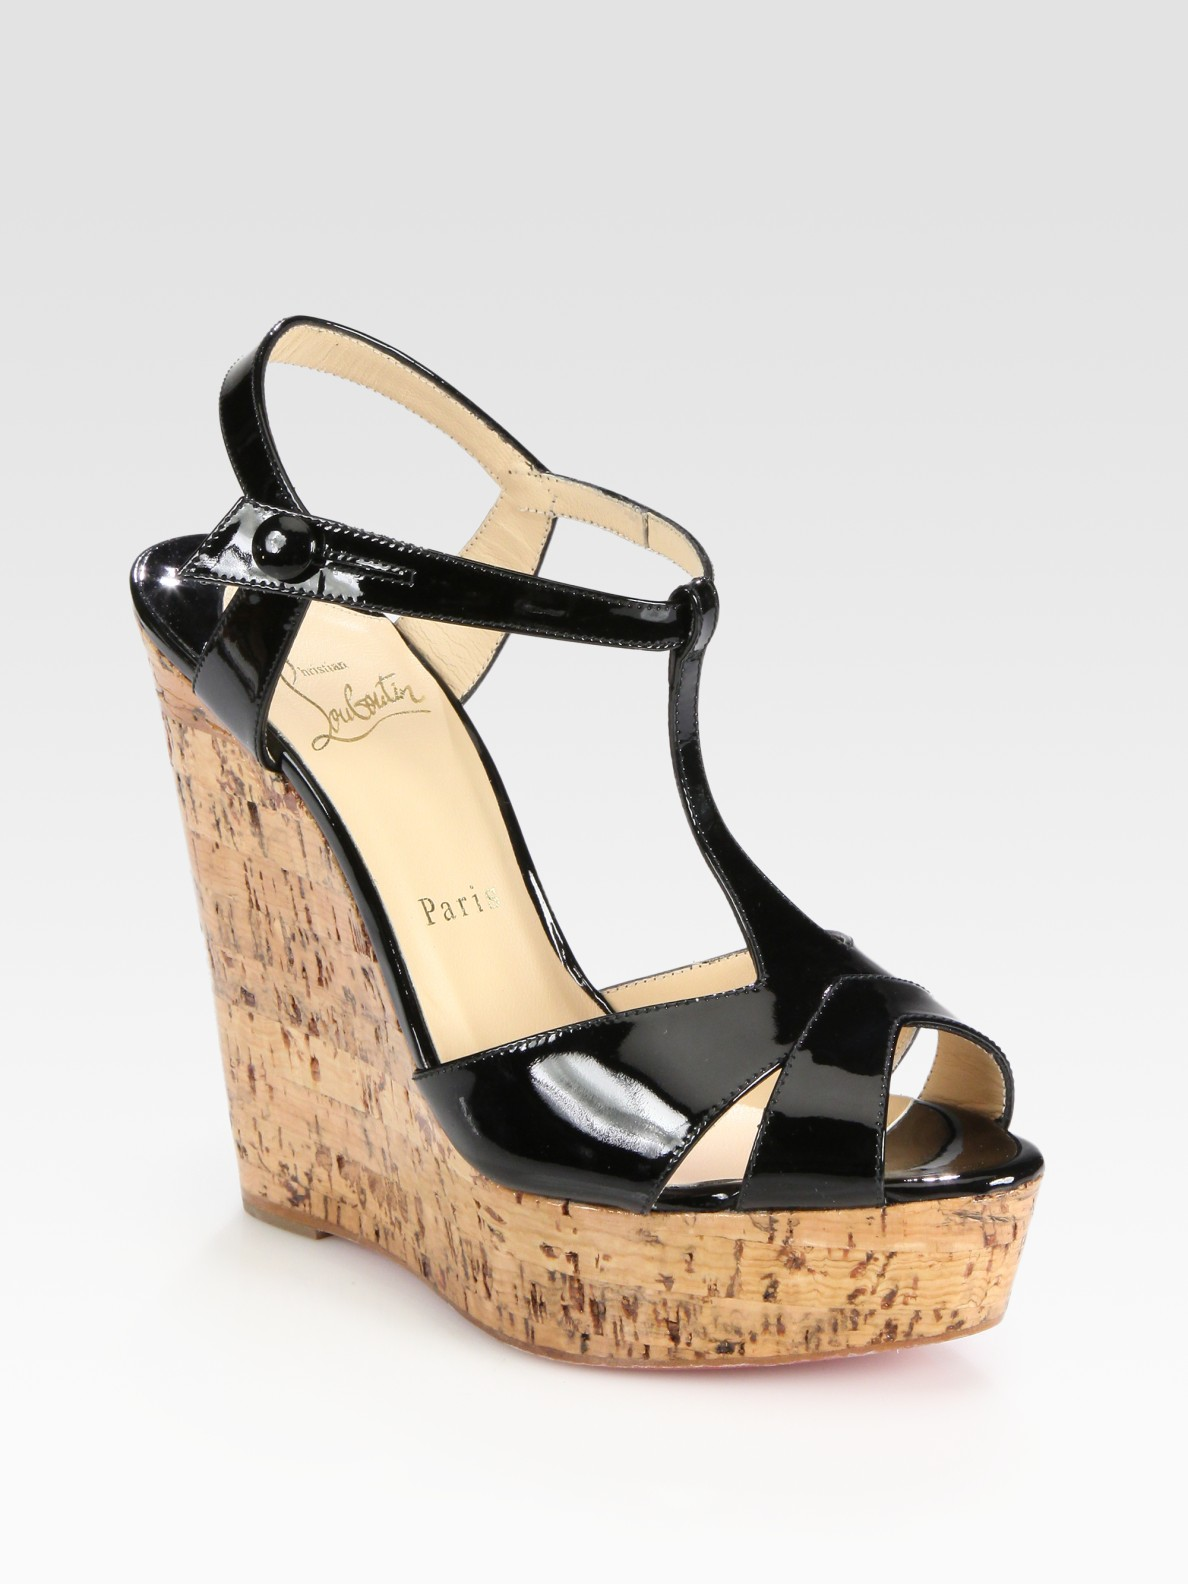 0d3e0ae23f0c Lyst - Christian Louboutin Patent Leather T-strap Cork Wedge Sandals ...